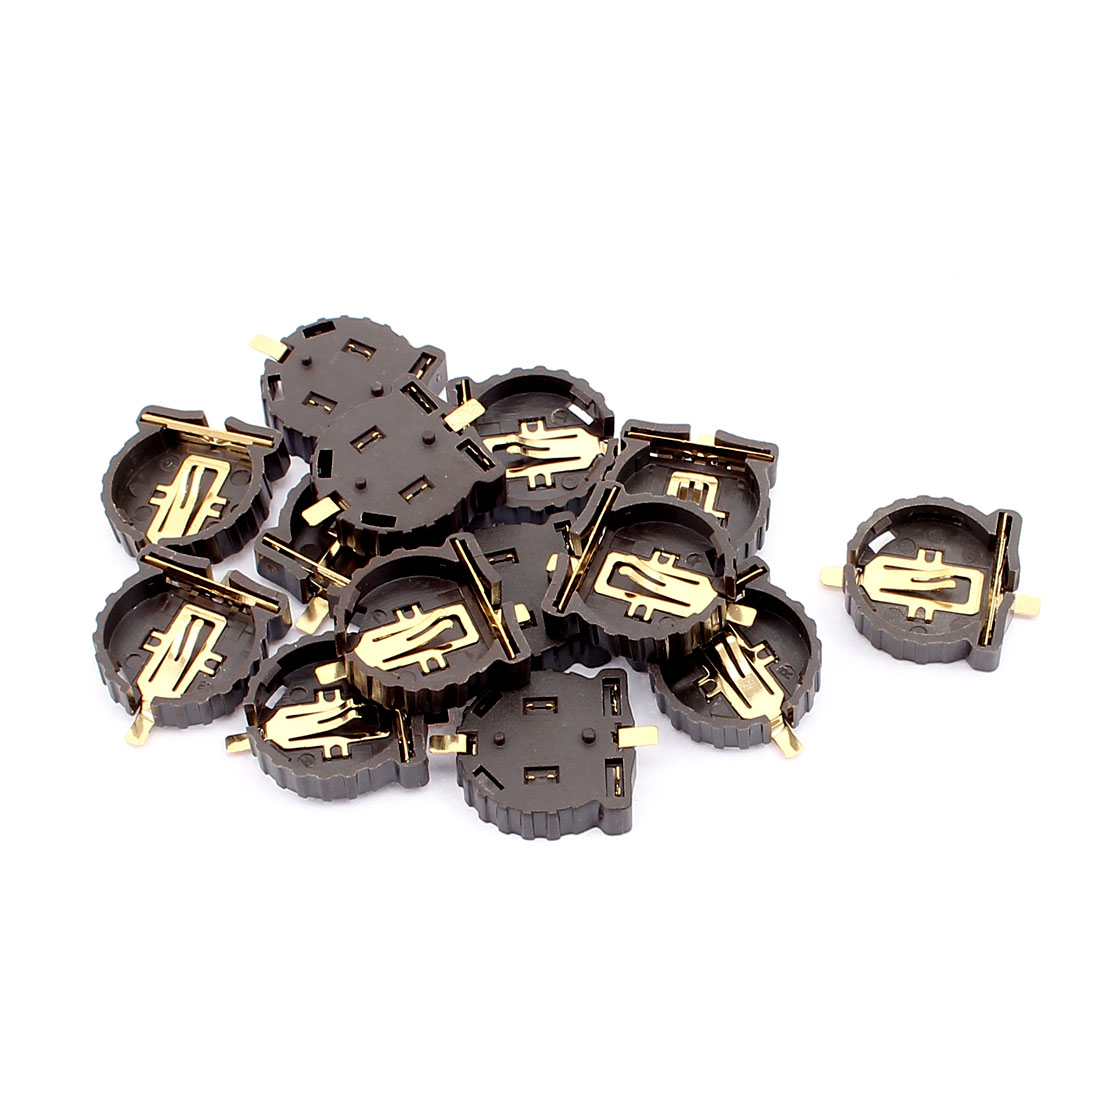 14 Pcs Brown Plastic CR1220 Cell Button Lithium Batteries Socket Holder